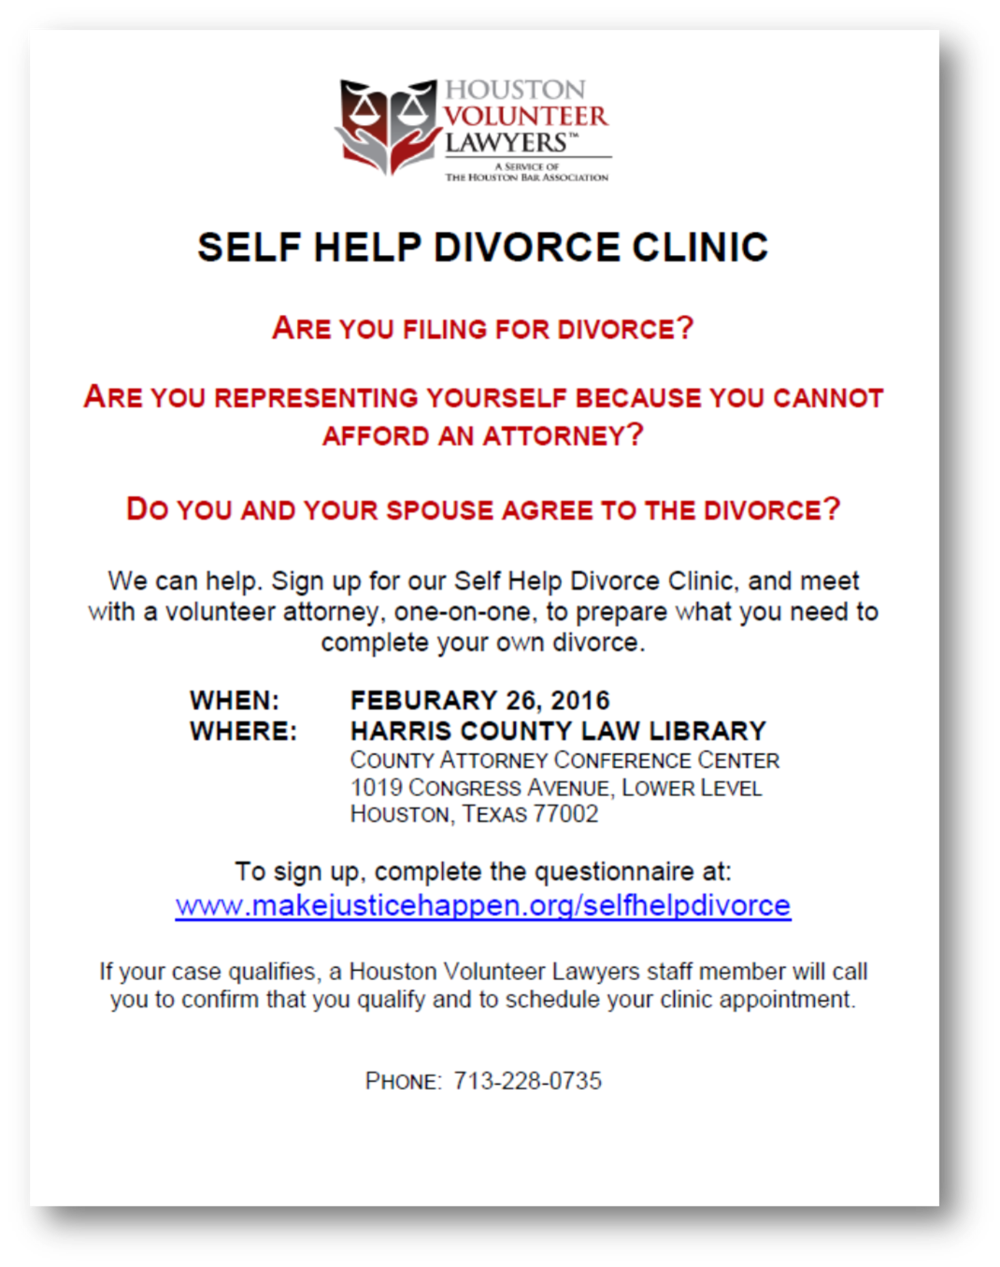 Link to event page with downloadable flyer for HVL Self-help divorce clinic - Feb. 26, 2016.